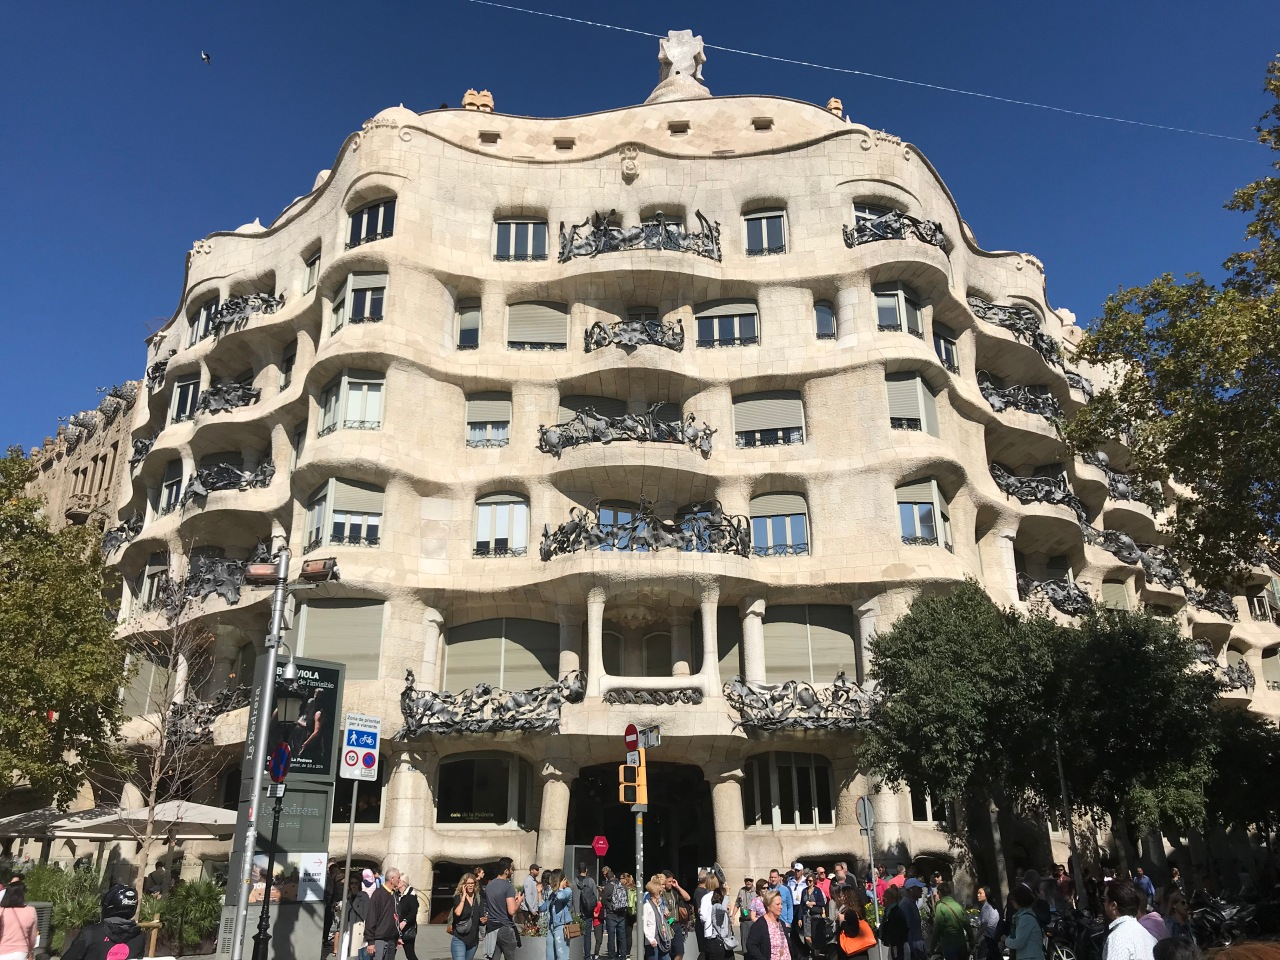 A day with MrGaudi